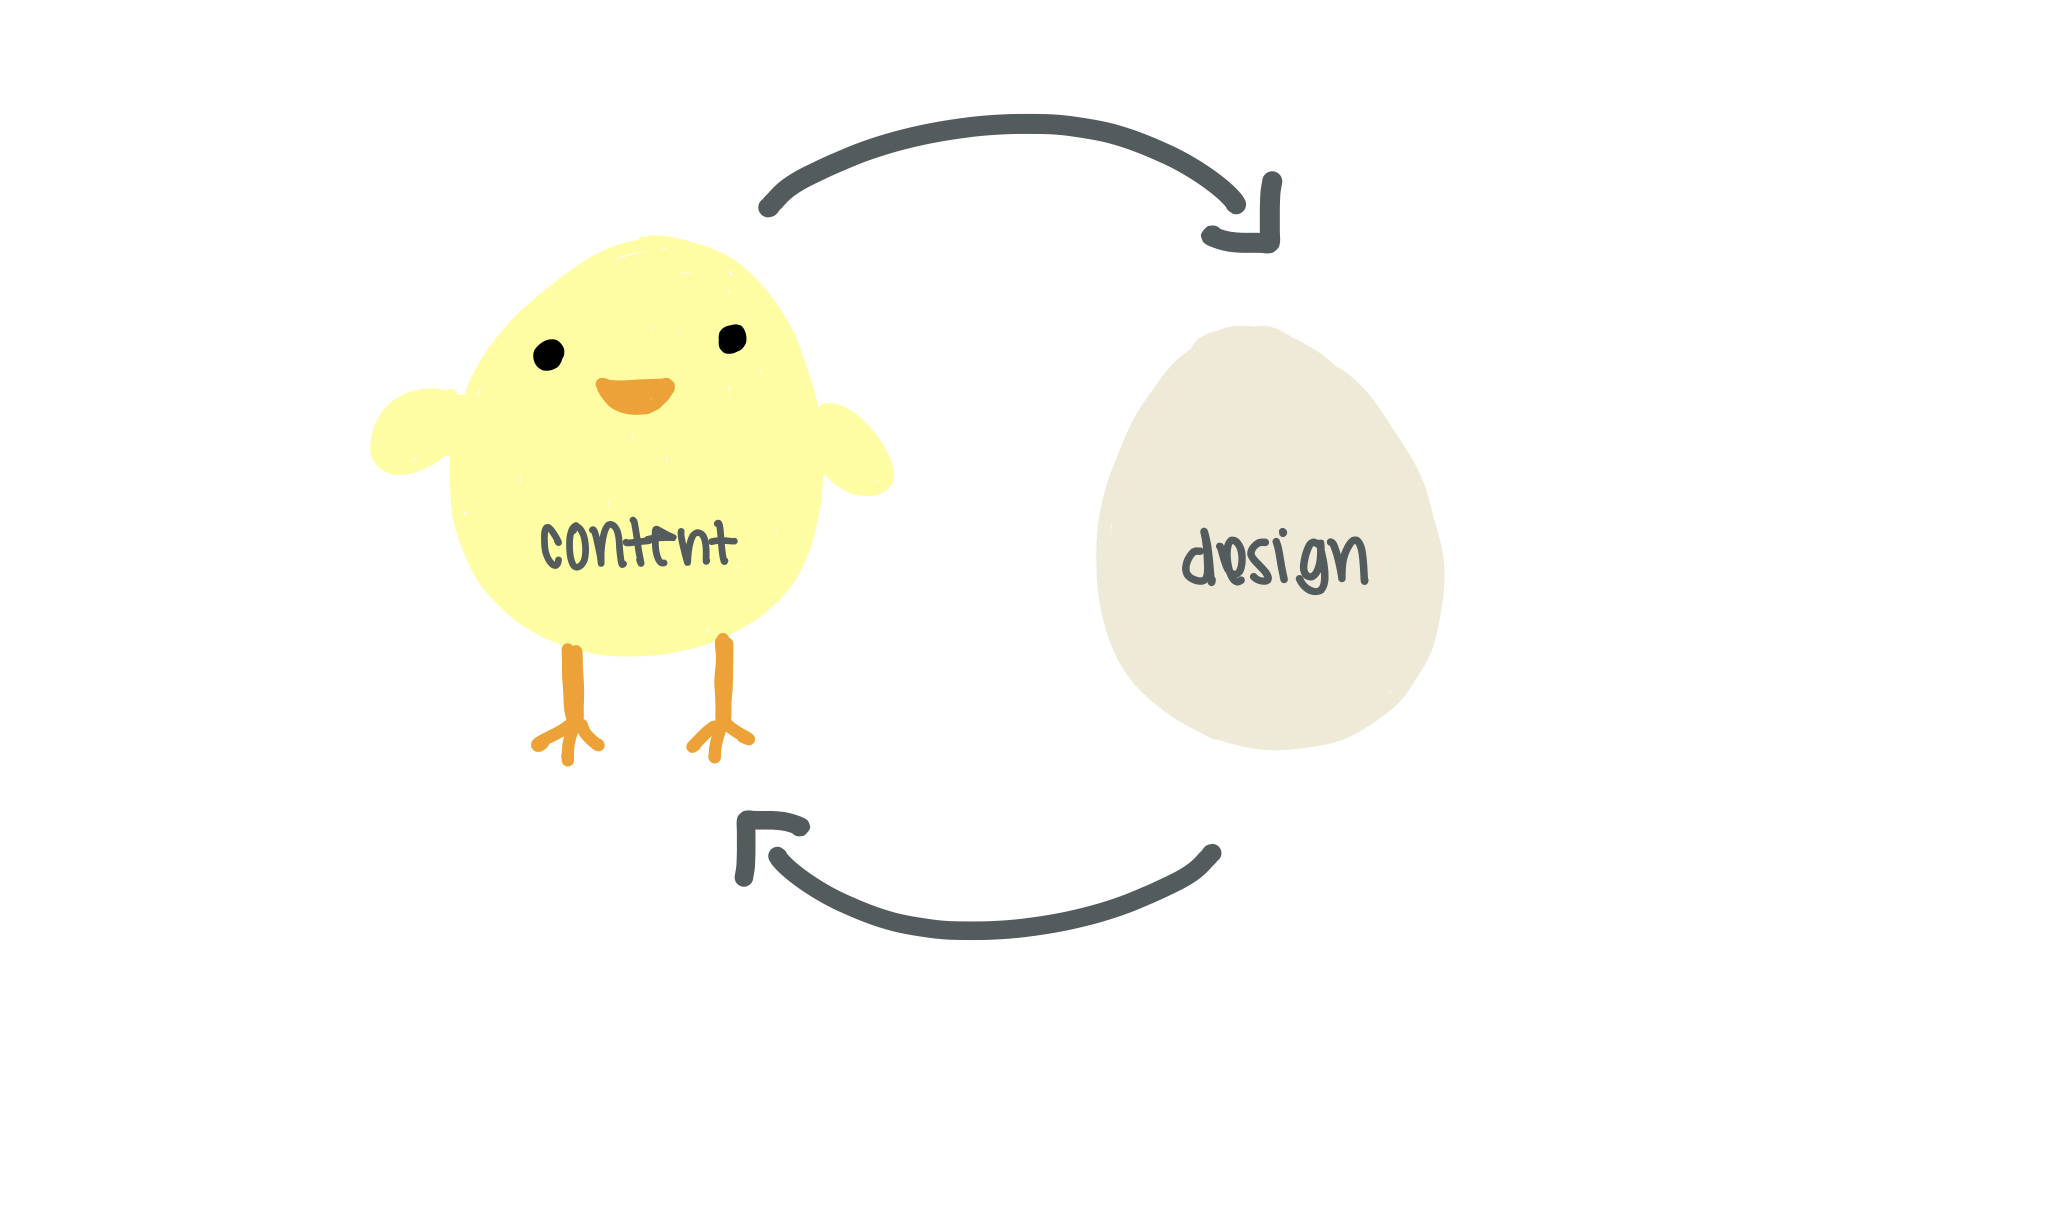 Break out of the chicken and the egg design loop and start with meaningful content